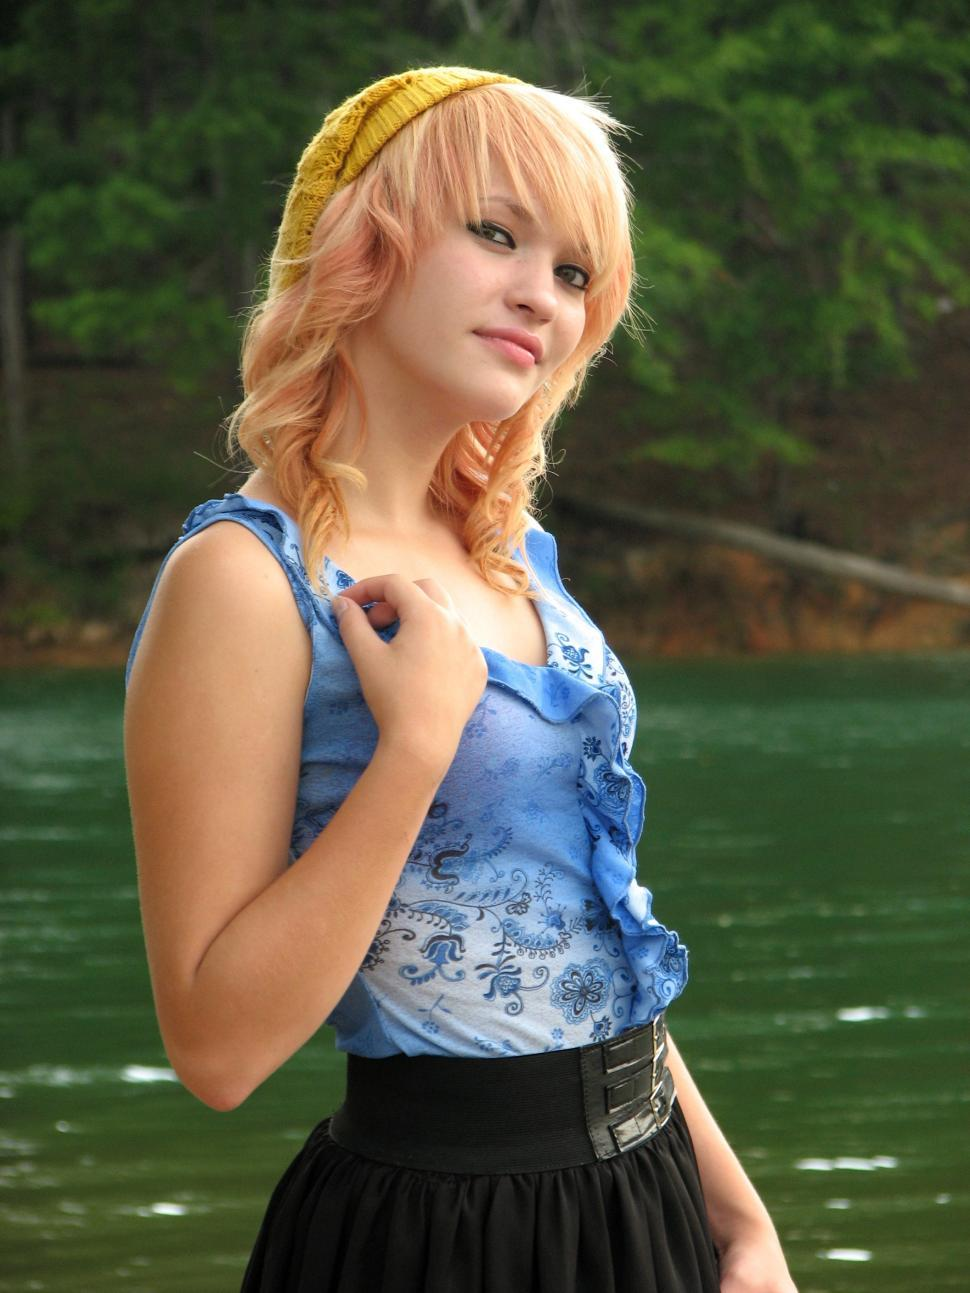 Download Free Stock HD Photo of A beautiful young woman posing by a lake Online